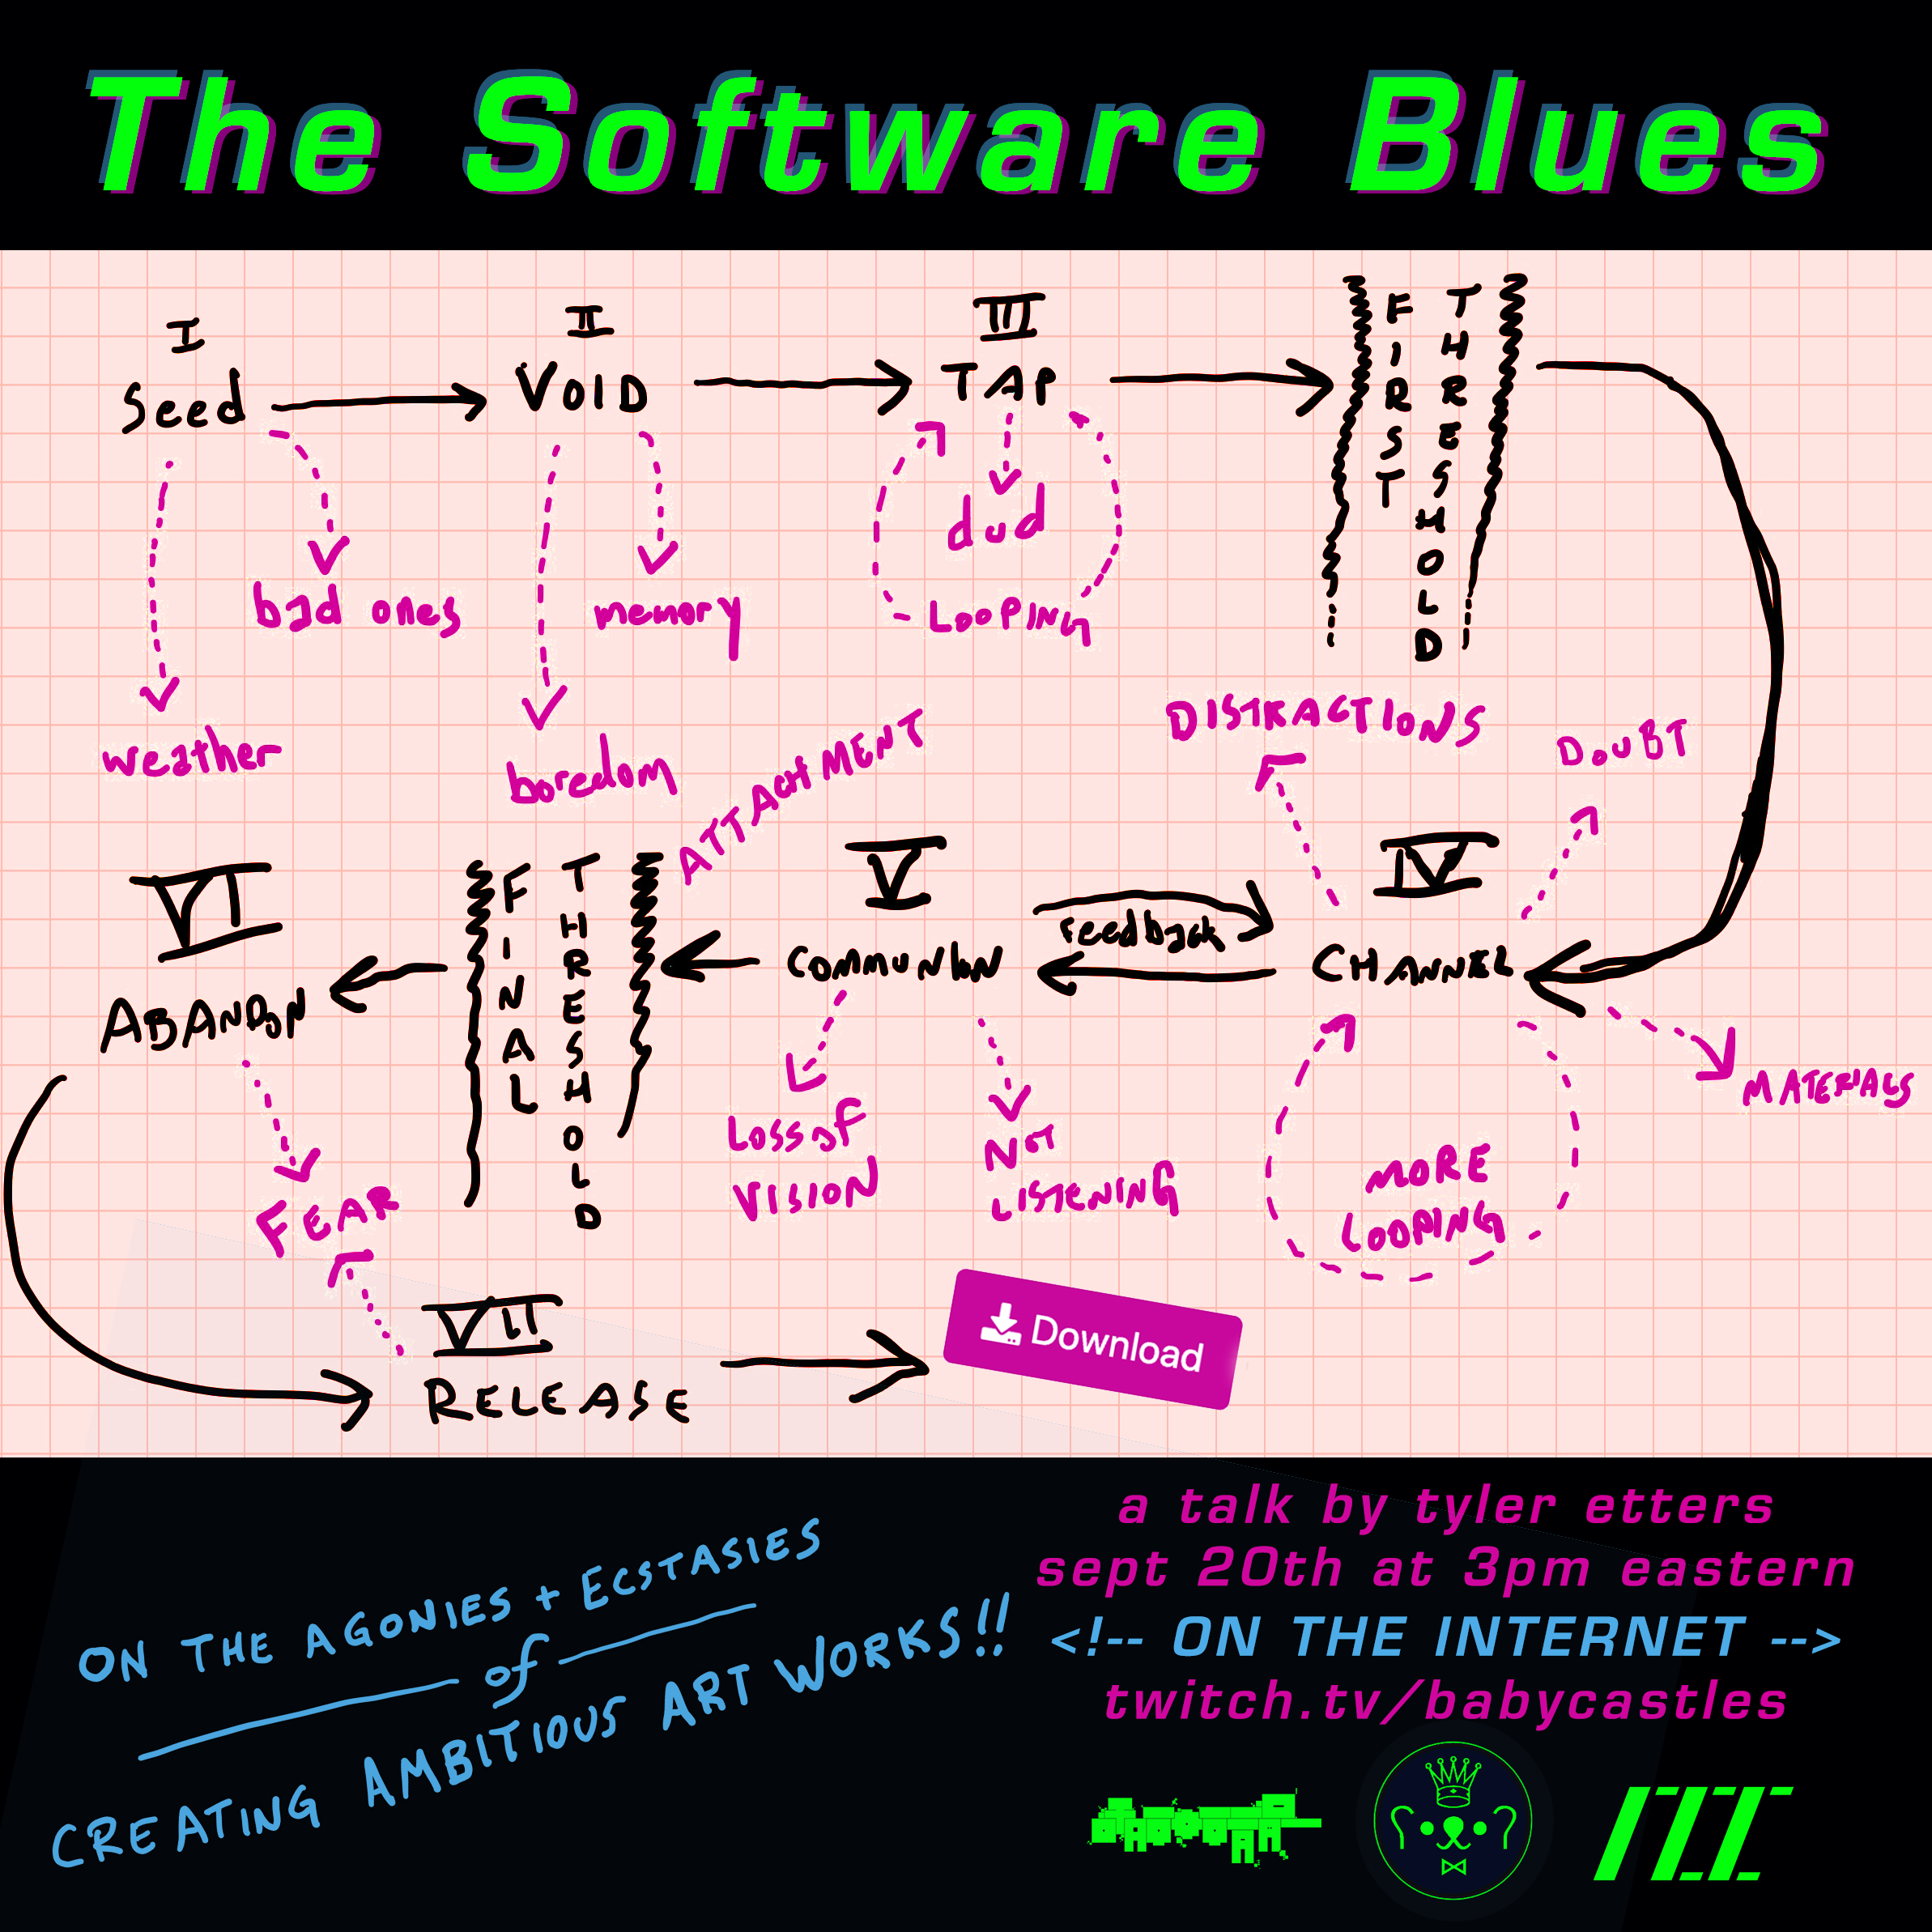 The Software Blues